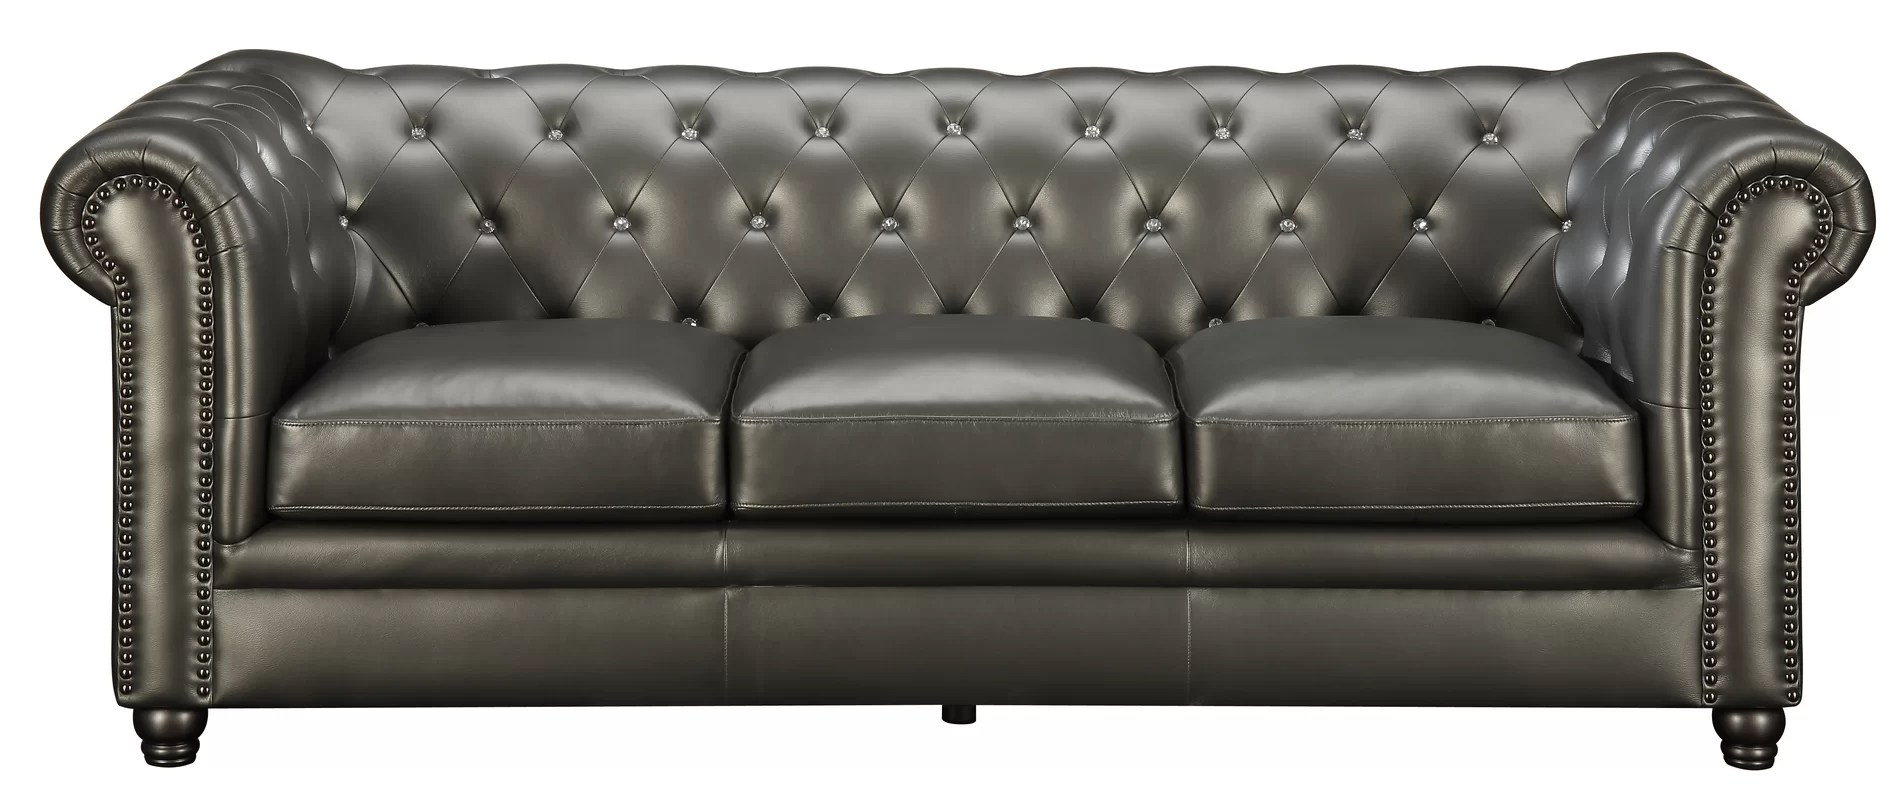 sofa company nl reviews leather sectional deals chesterfield images nuvo wool abode